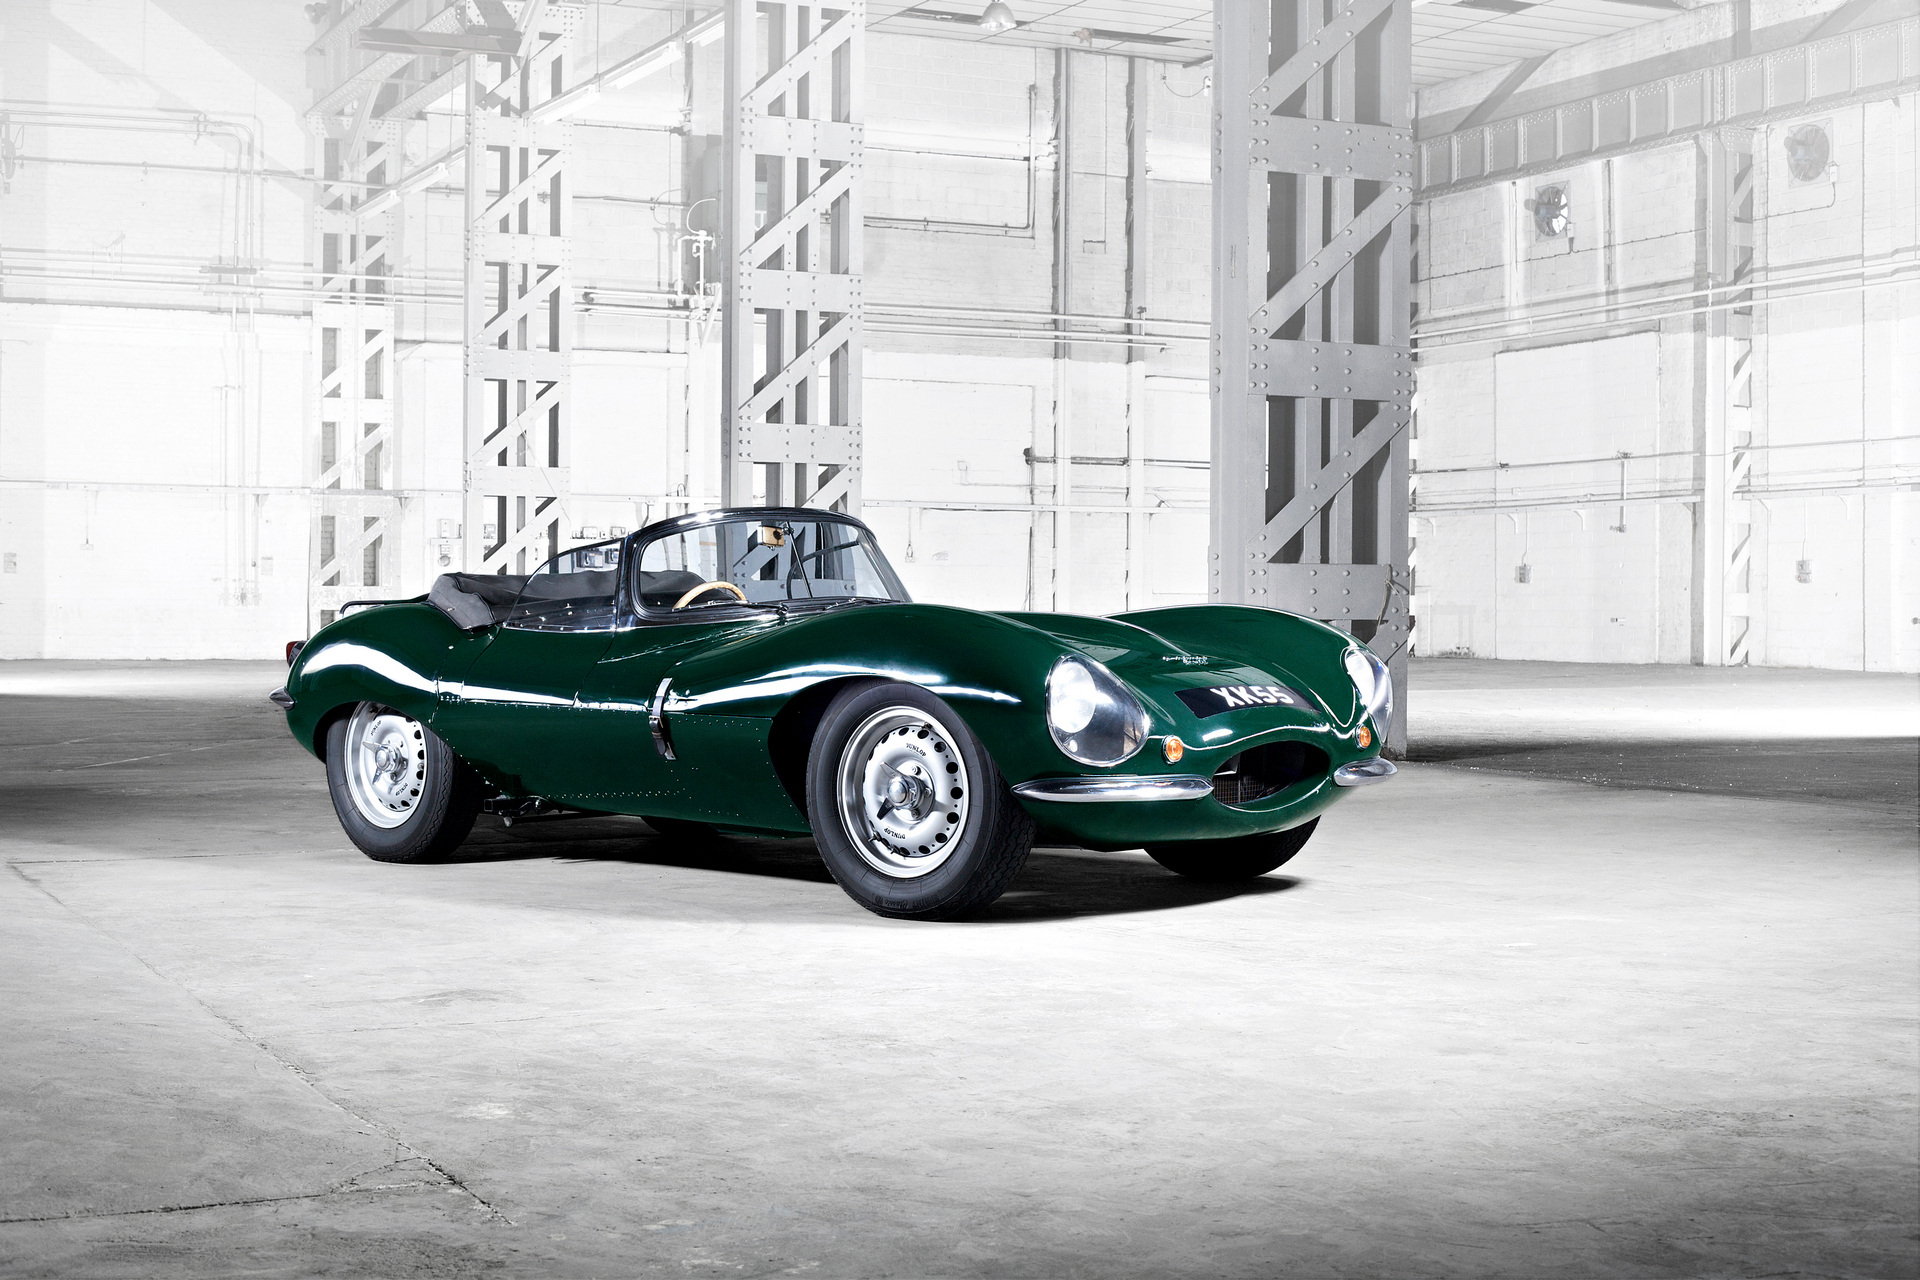 Jaguar Classic Announces XKSS Launch and Lightweight E-Type Race Plans © Tata Group